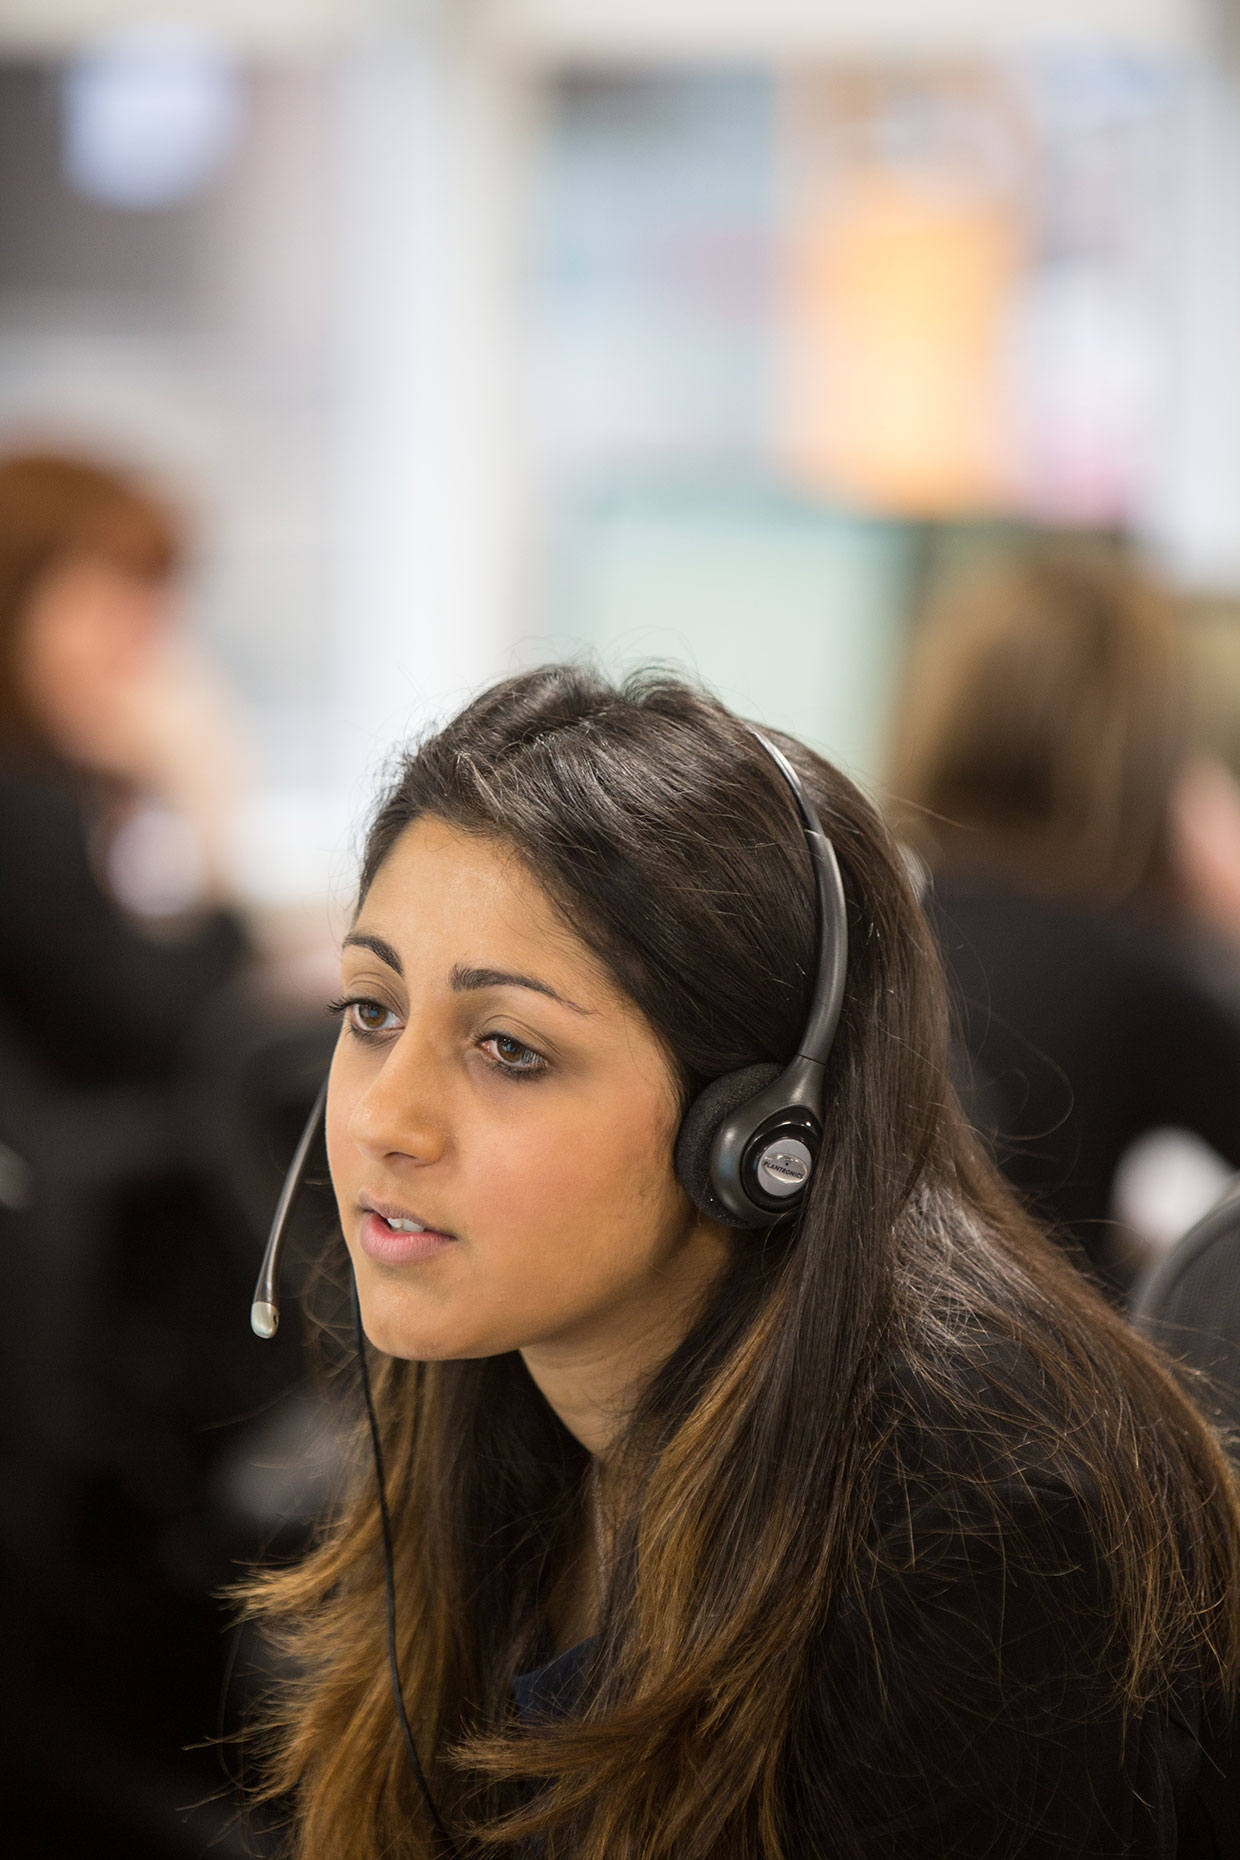 Woman on phone call at Barclays Bank, Scotland, by photographer J. Sutton-Hibbert